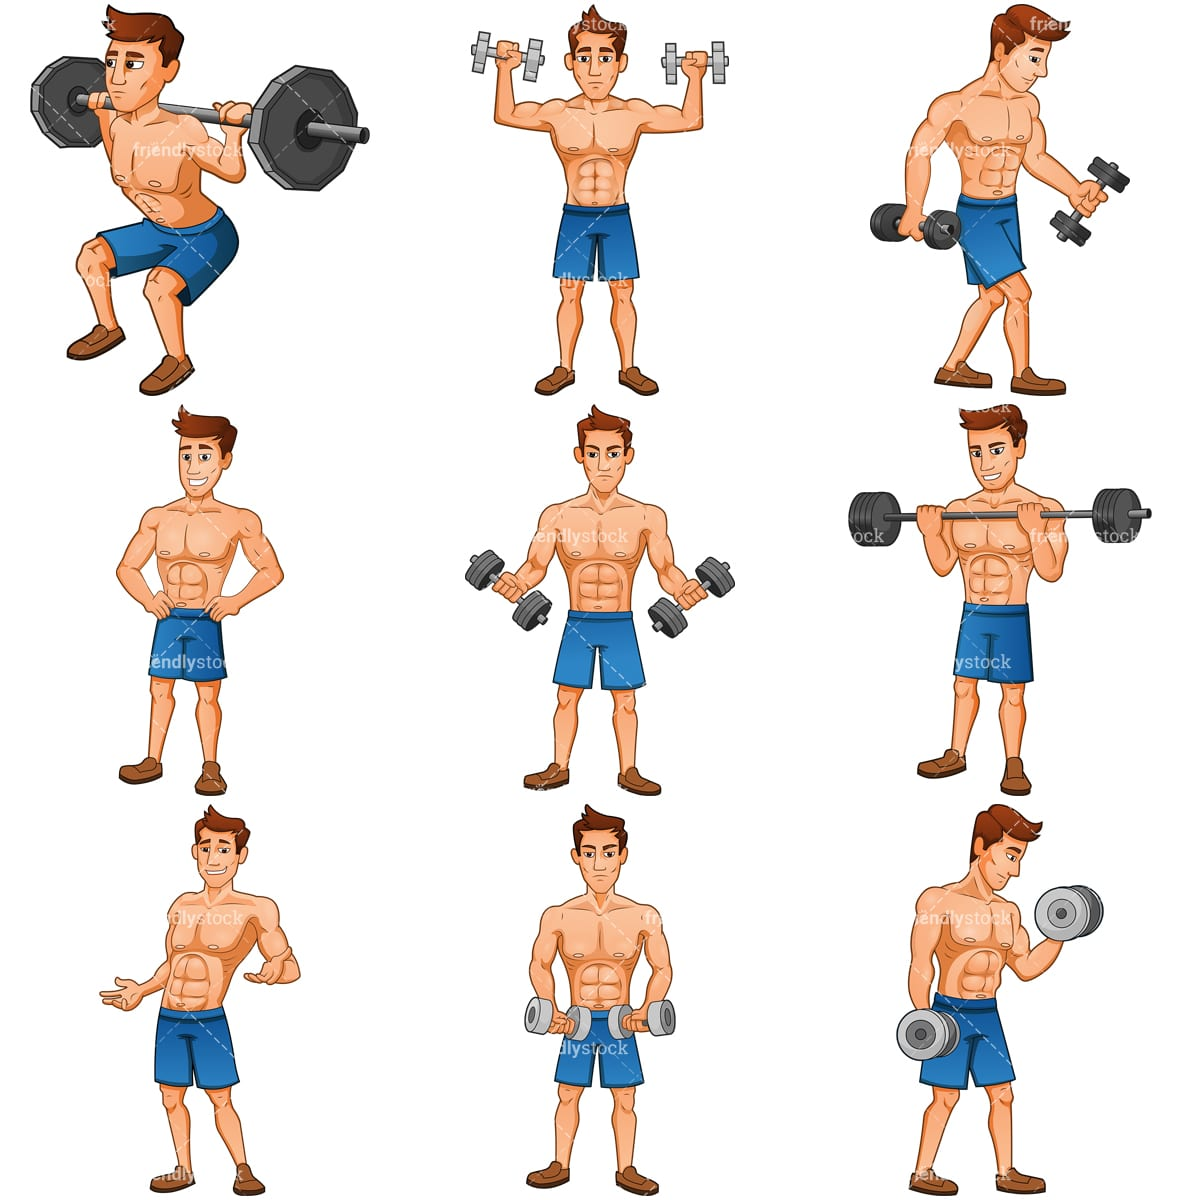 Muscle Man Cartoon Character Collection Friendlystock 294 likes · 4 talking about this. muscle man cartoon character collection friendlystock